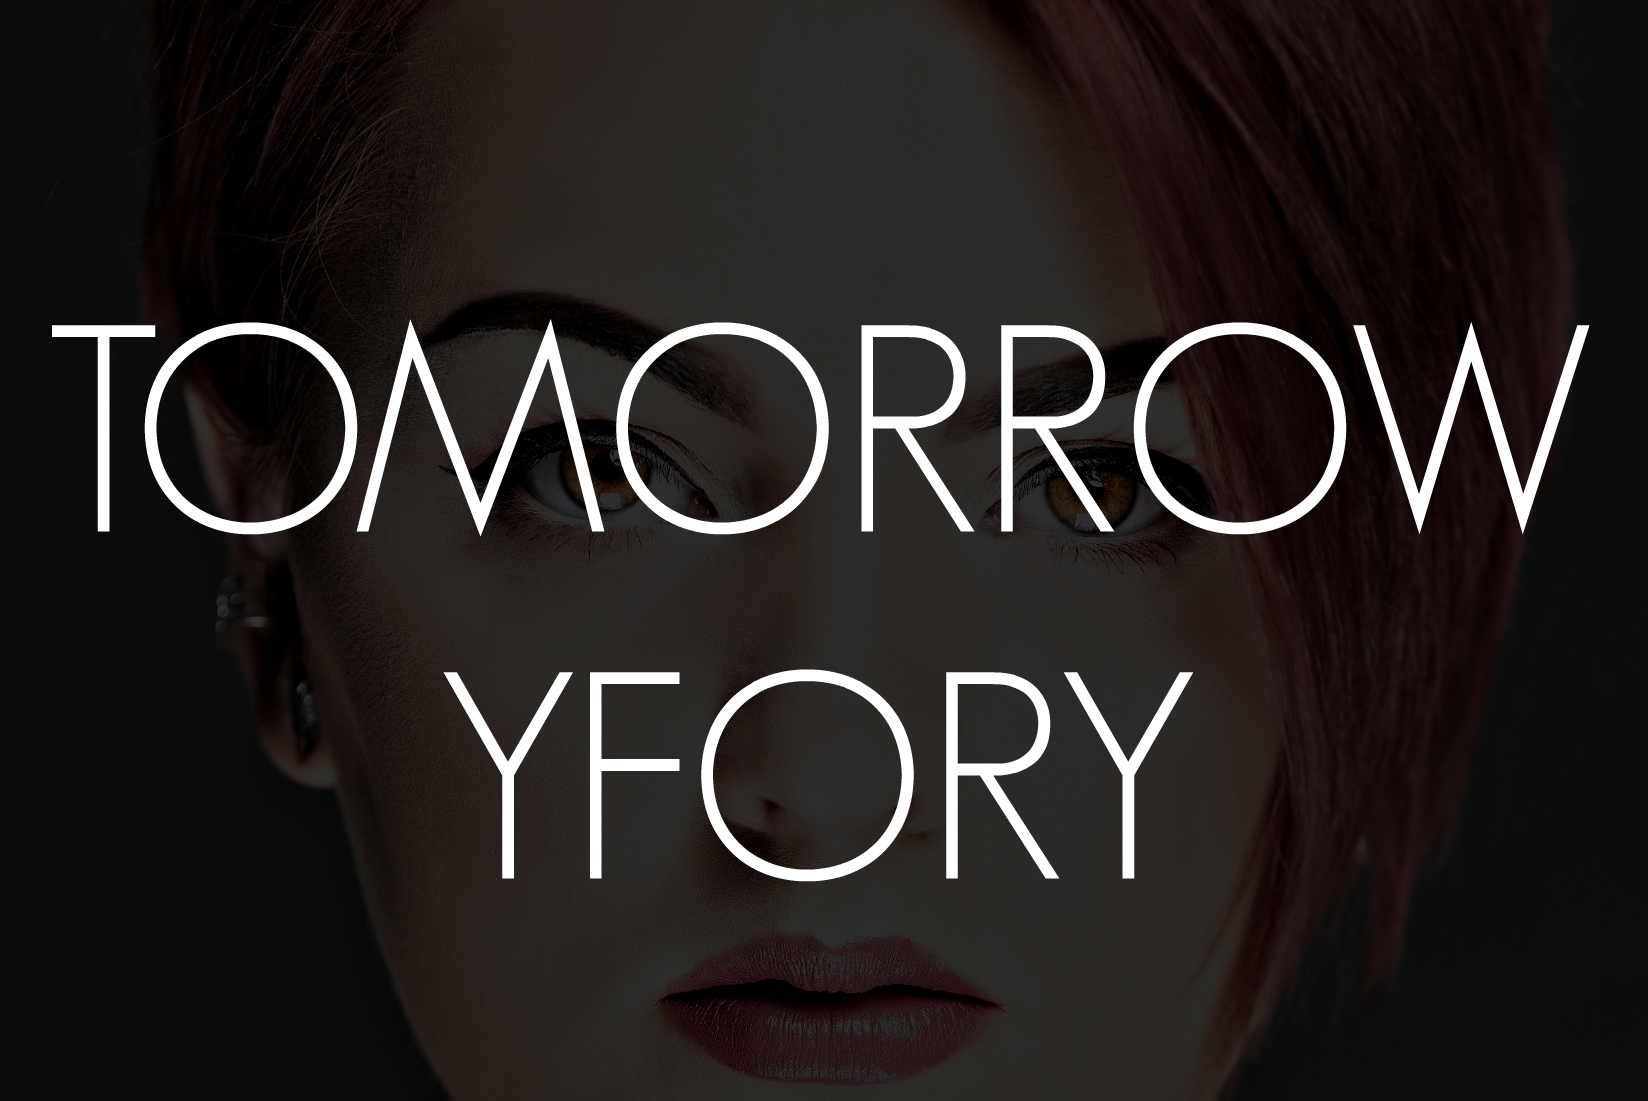 Tomorrowyfory